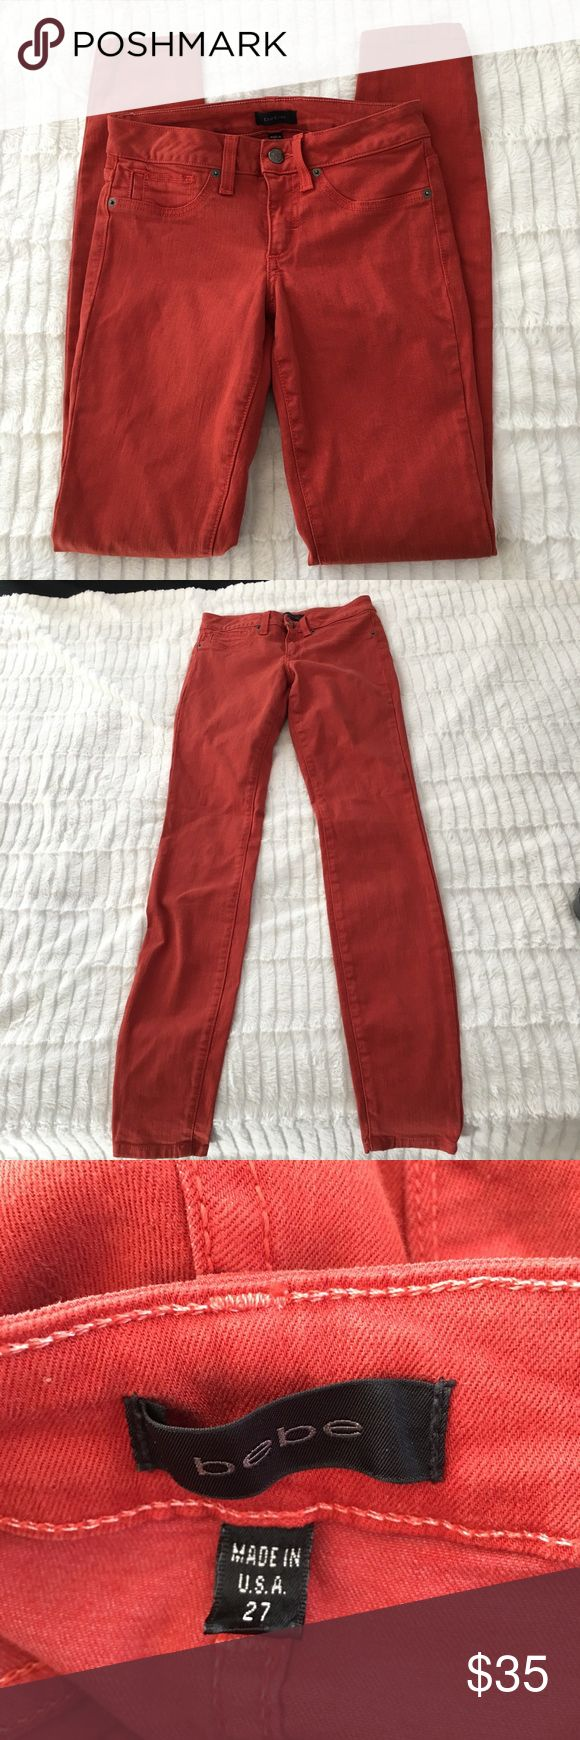 Bebe Orange Skinny Jeans Size 27 Bebe Orange Skinny Jeans Size 27. Slightly faded from washing but still great condition. Please look at measurements for fit. Feel free to ask any questions :) bebe Jeans Skinny